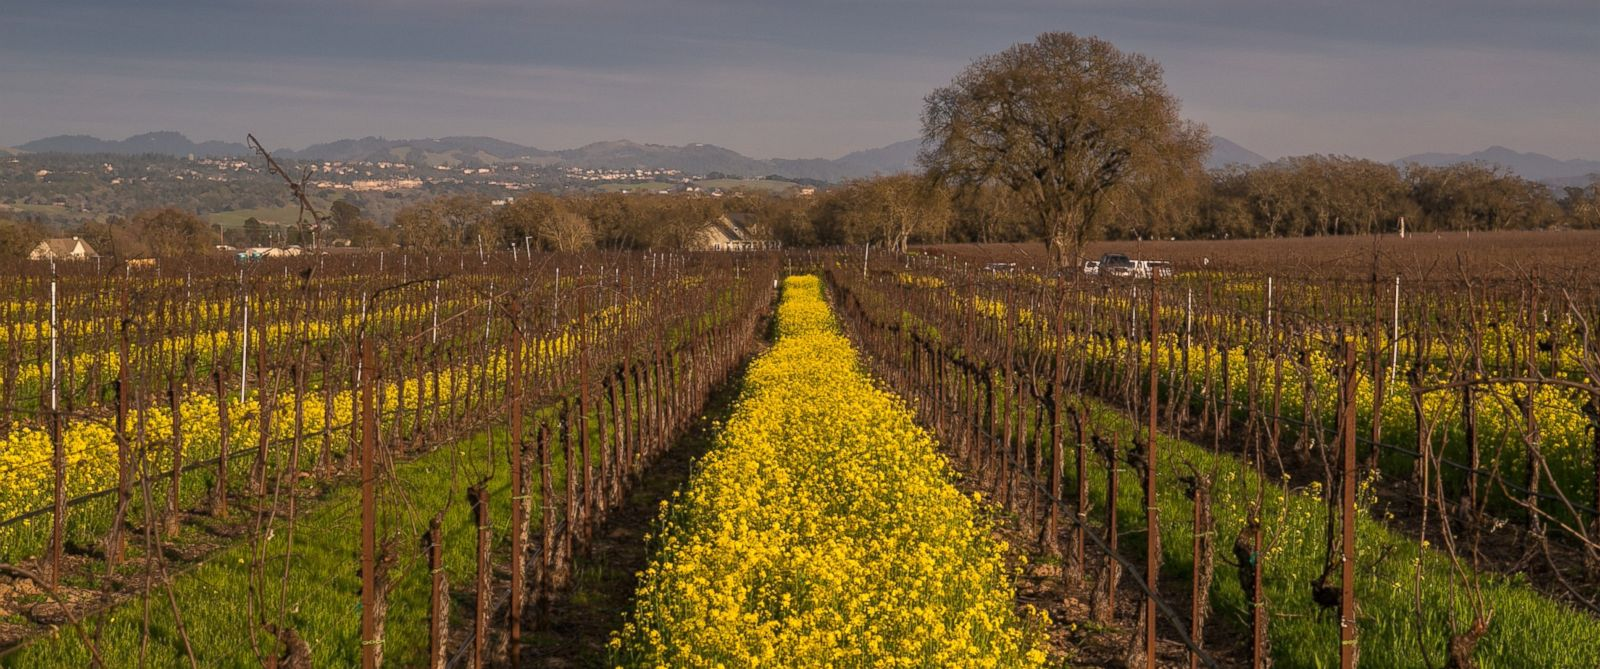 PHOTO: Yellow mustard sprouts after recent rains in dormant vineyards Feb. 11, 2016, near Healdsburg, Calif.